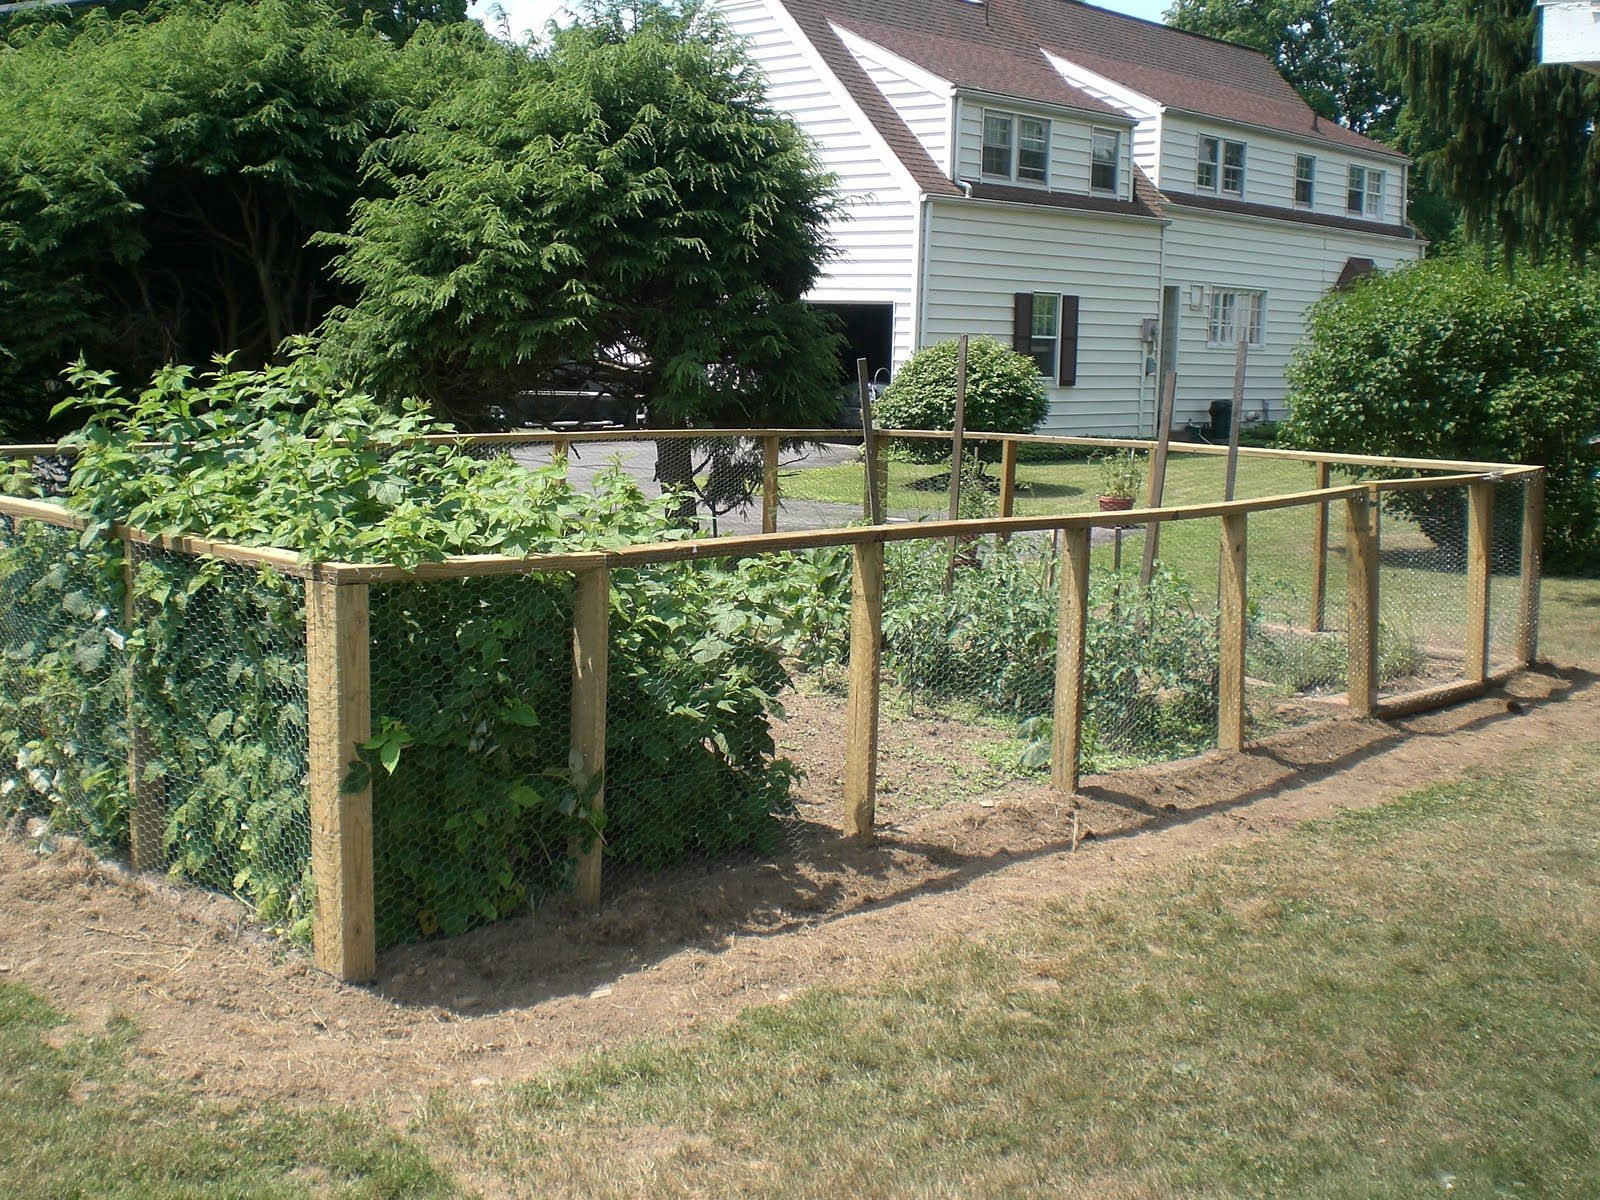 Veggie Garden Fence Around Chicken Coop... To Keep Dogs Out